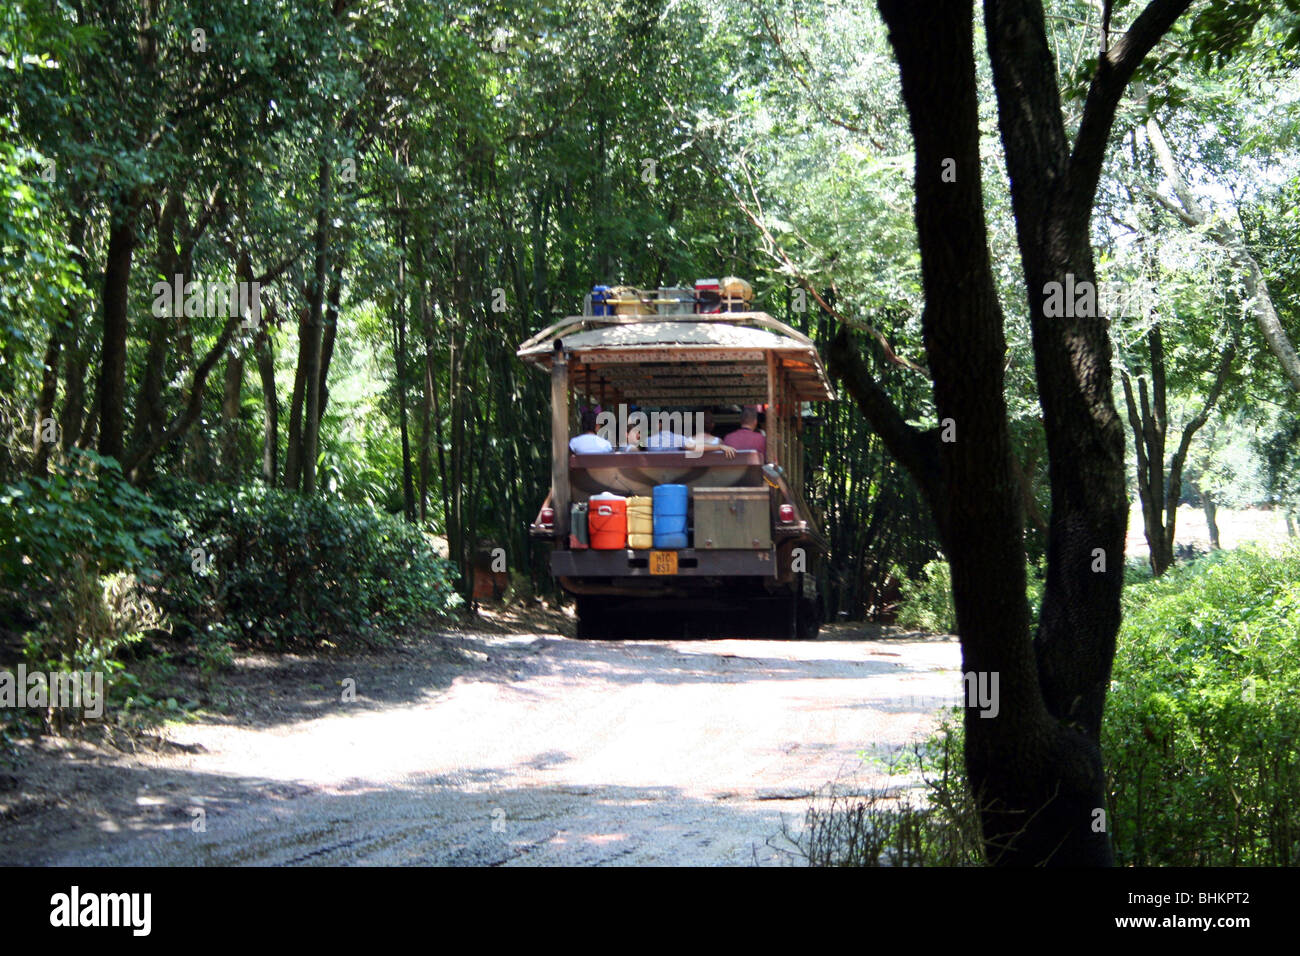 Mount Kilimanjaro safari truck Animal Kingdom WDW Orlando Florida USA - Stock Image